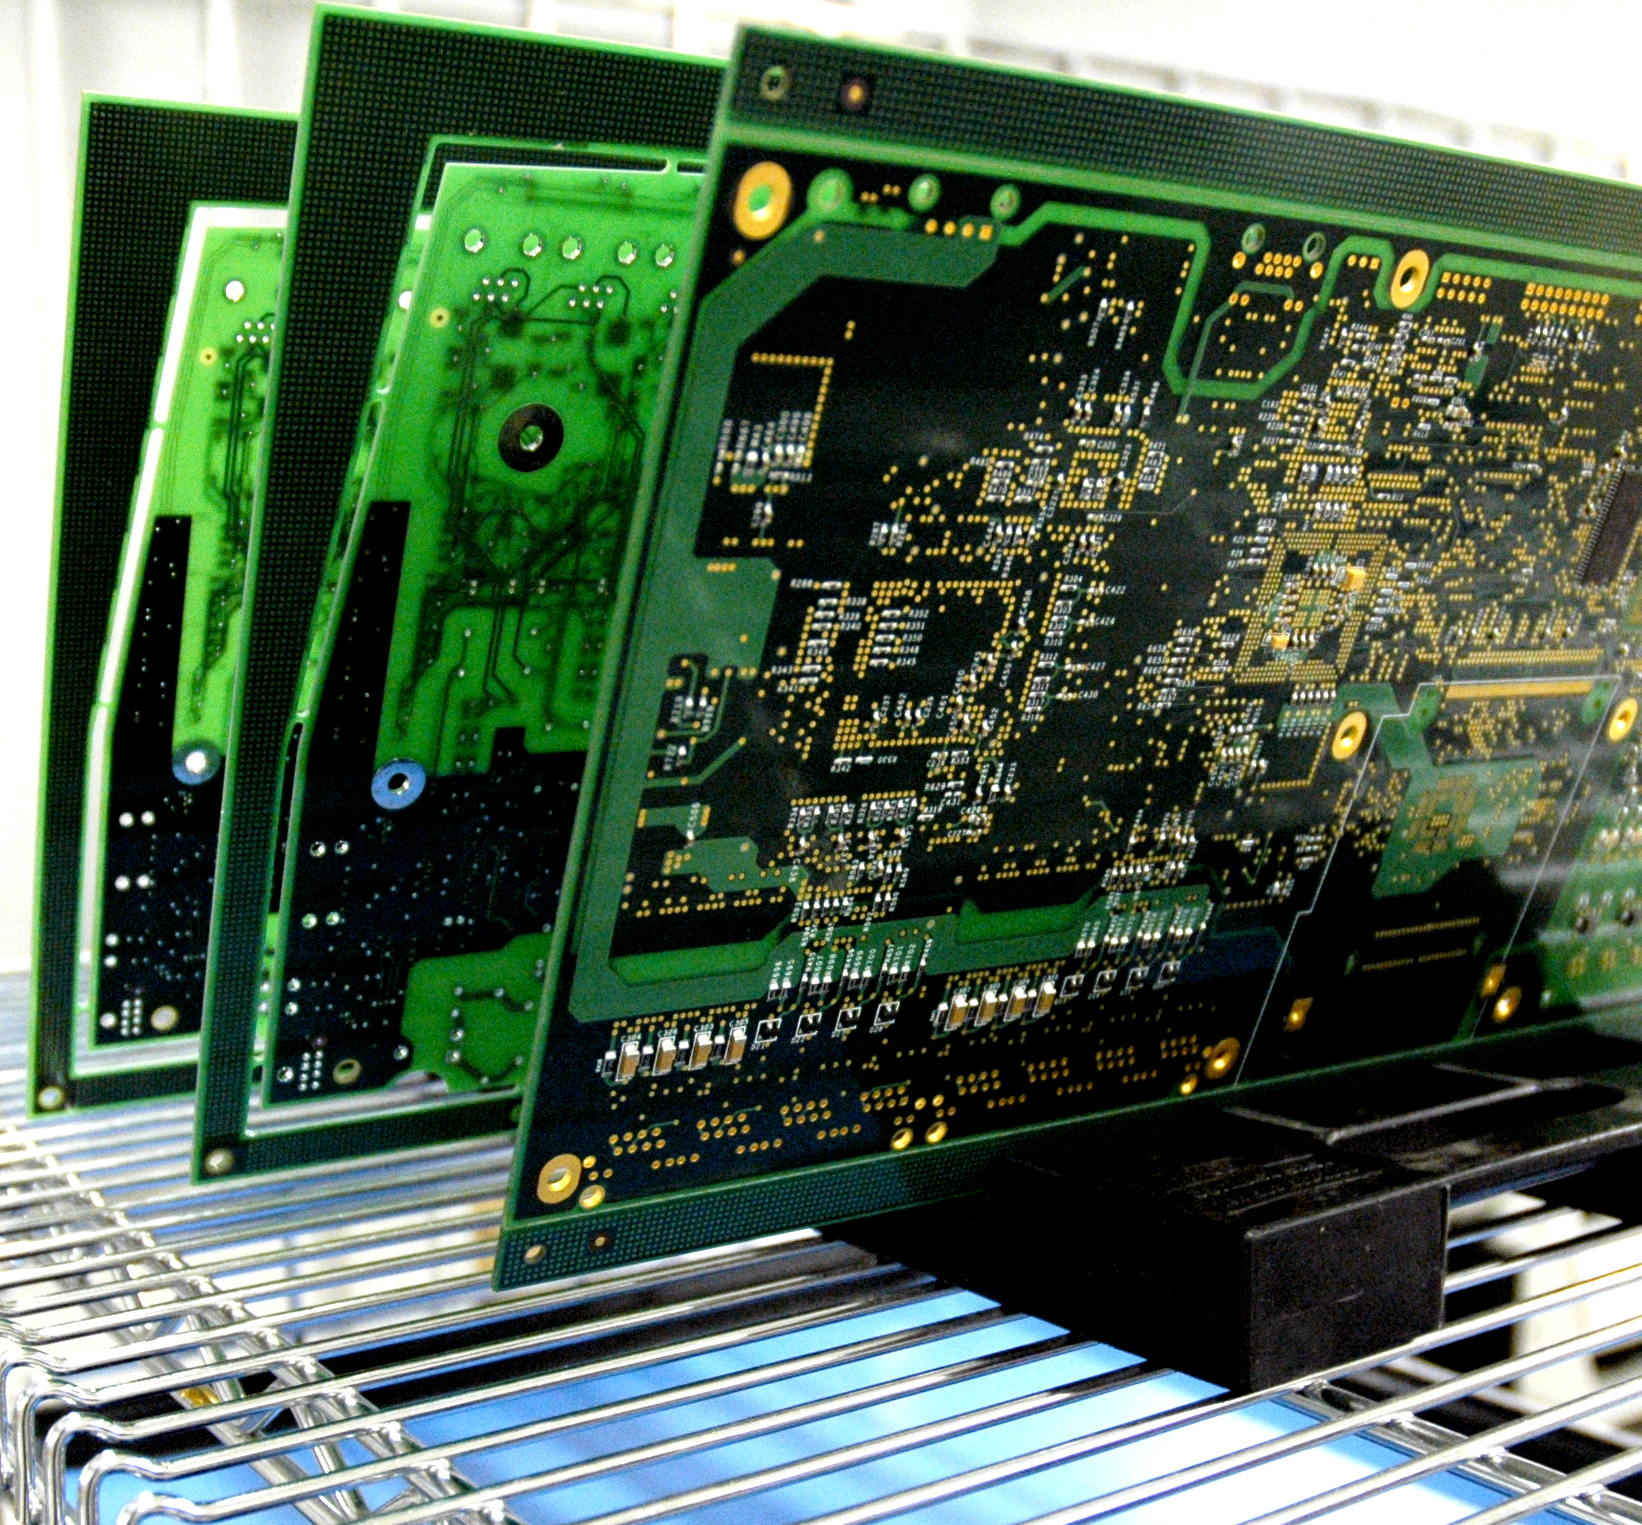 Federal Electronics Introduces Fully Integrated Ems Solution For Electronic Circuit Key That Uniquely Combines Four Production Processes Fiber Interconnect Copper Mixed Technology Printed